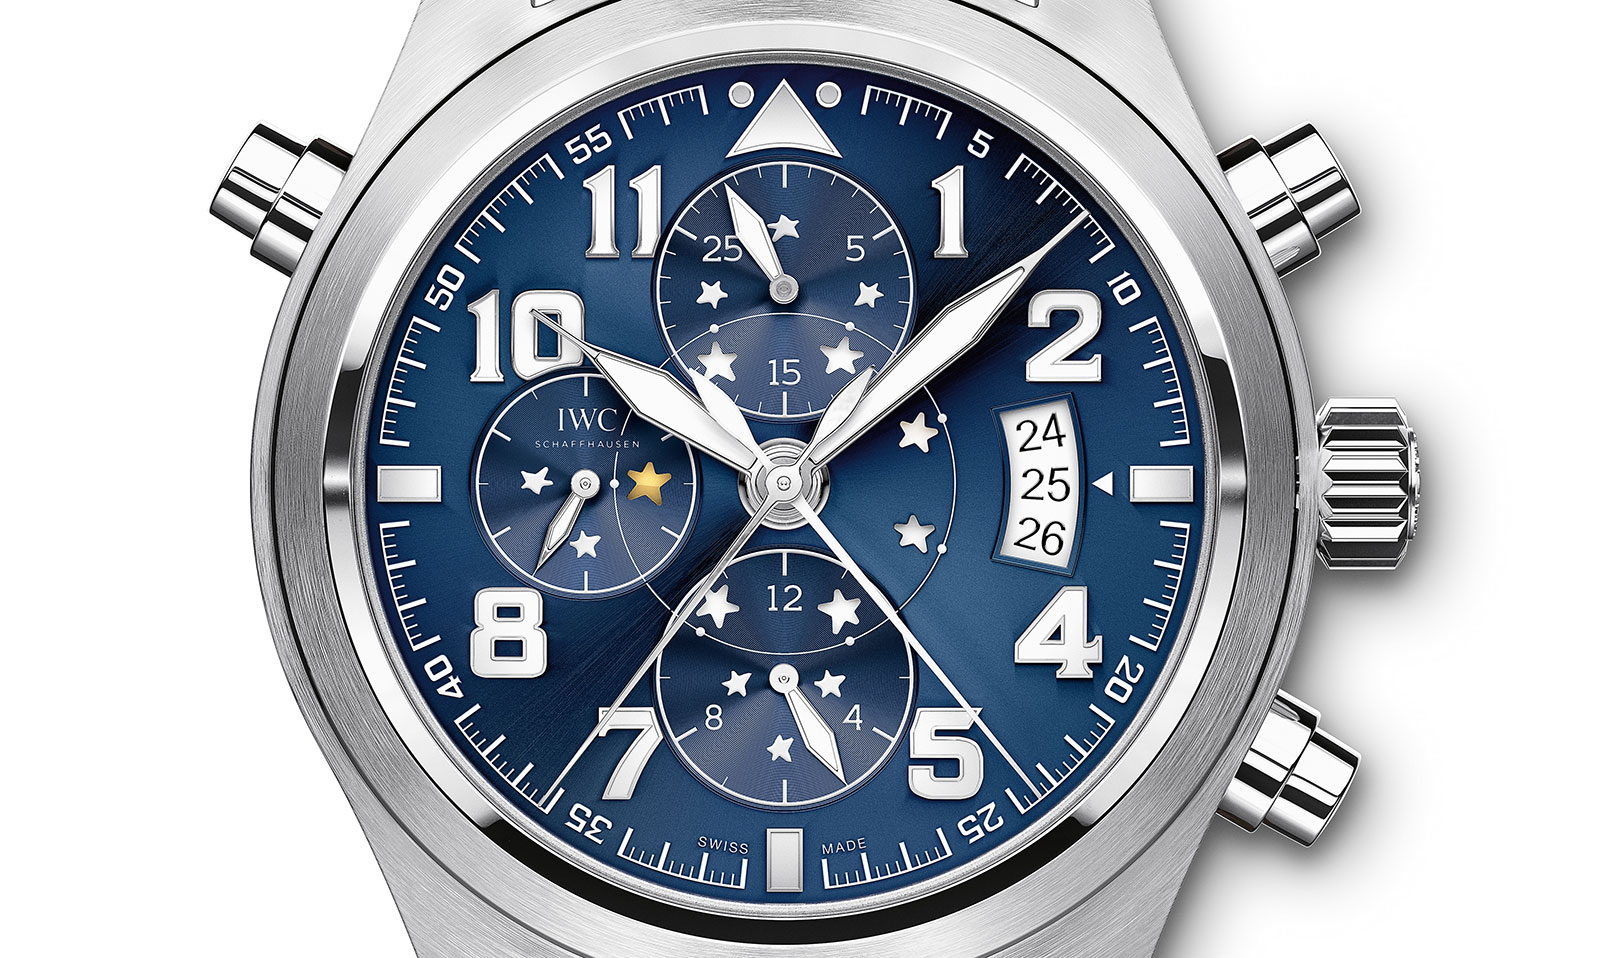 Outstanding IWC Le Petit Prince Limited Edition Watches